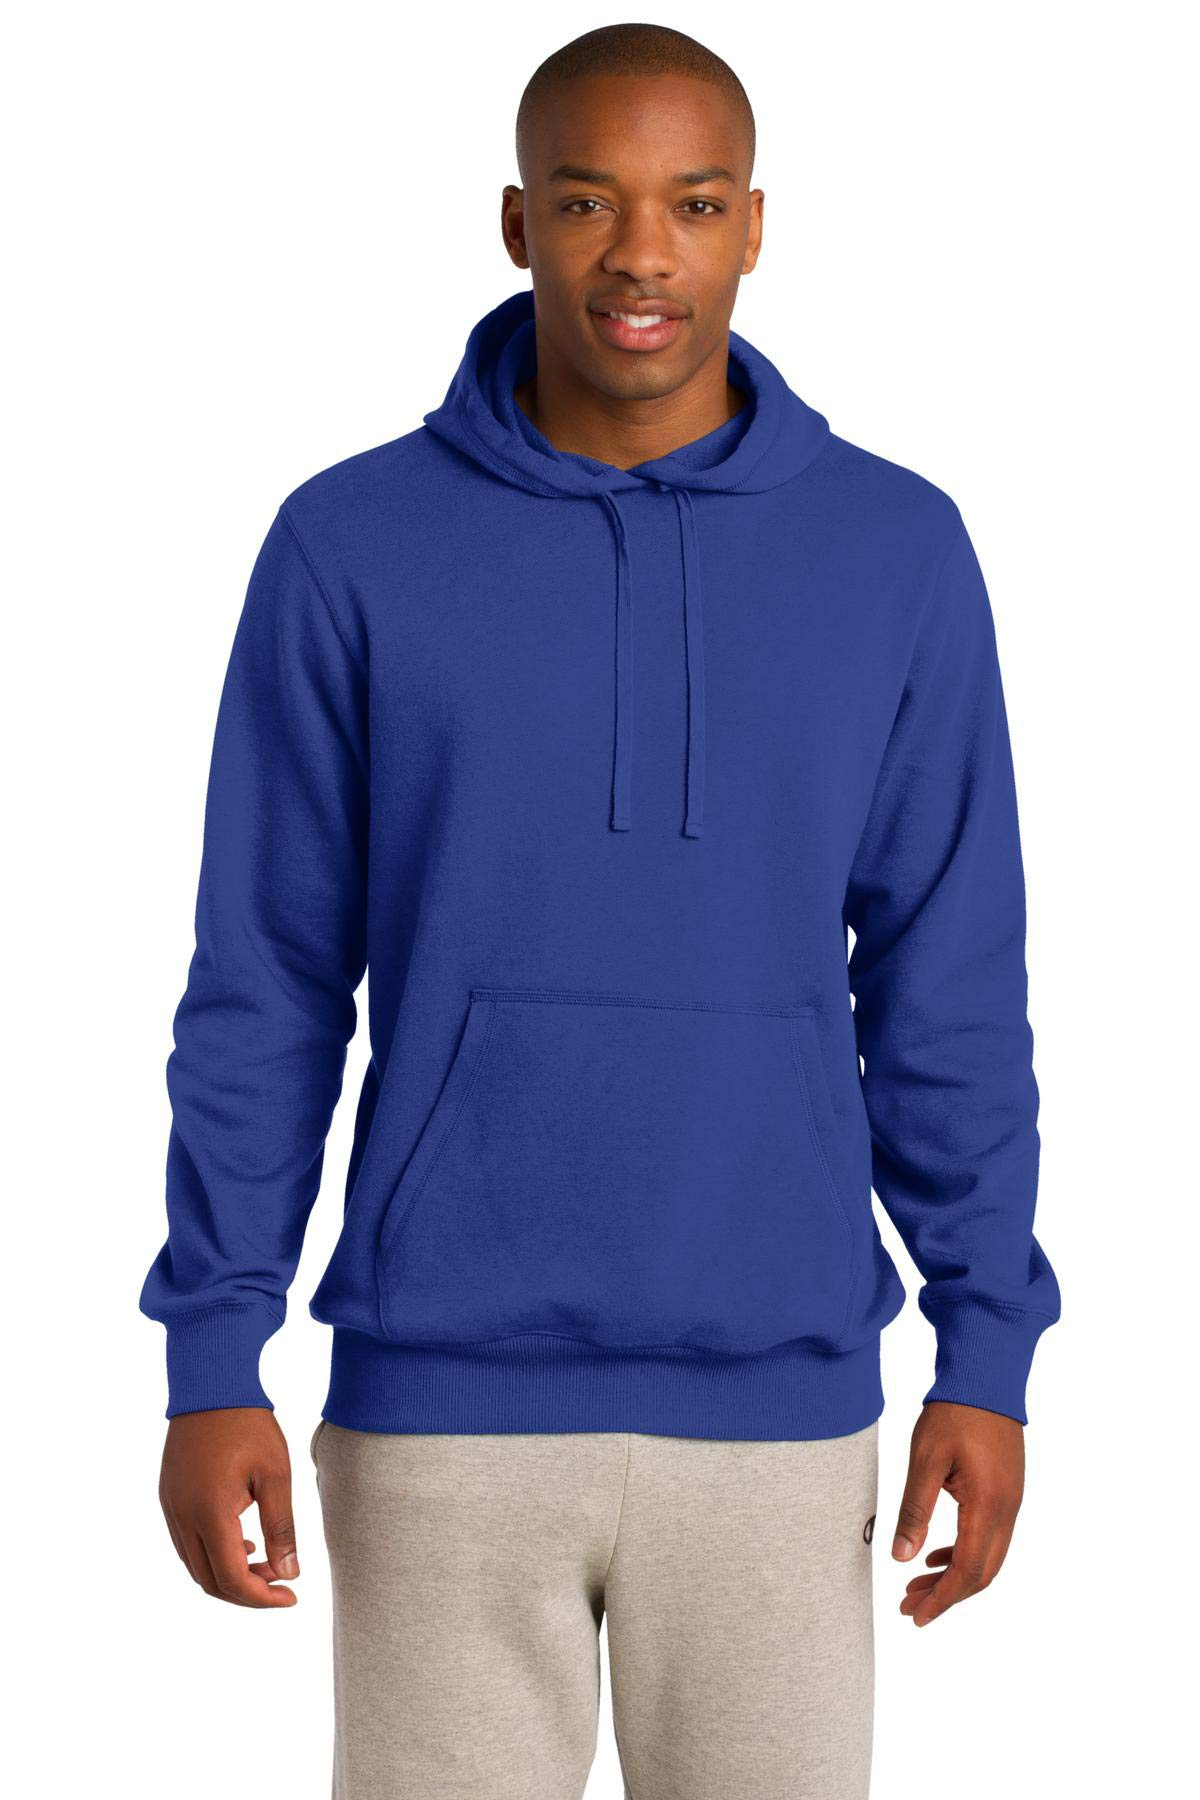 Sport-Tek Men's Tall Pullover Hooded Sweatshirt 2XLT True Royal by Sport-Tek